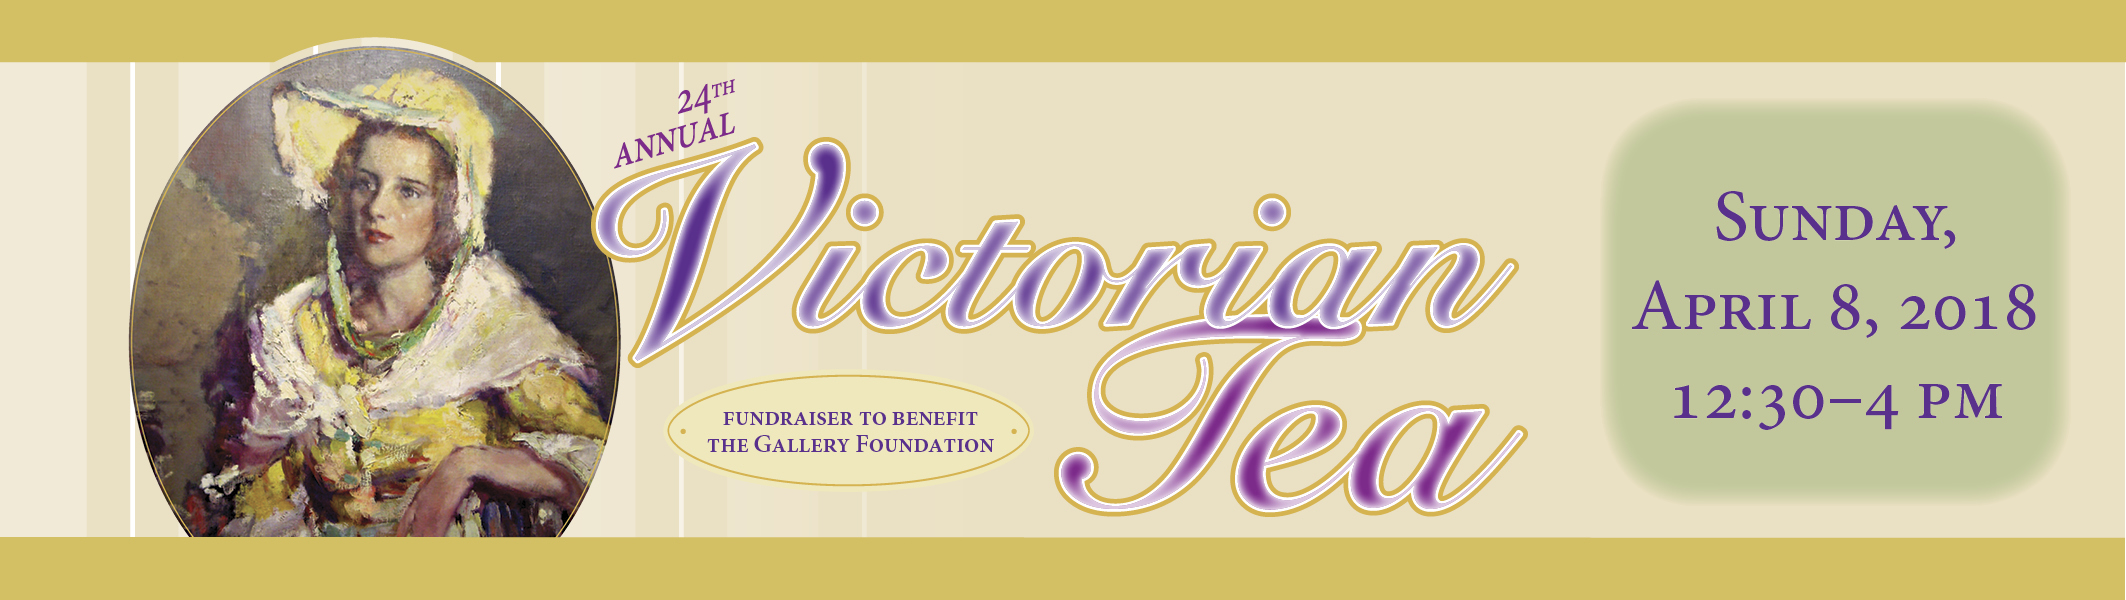 2018 Victorian Tea web header wide